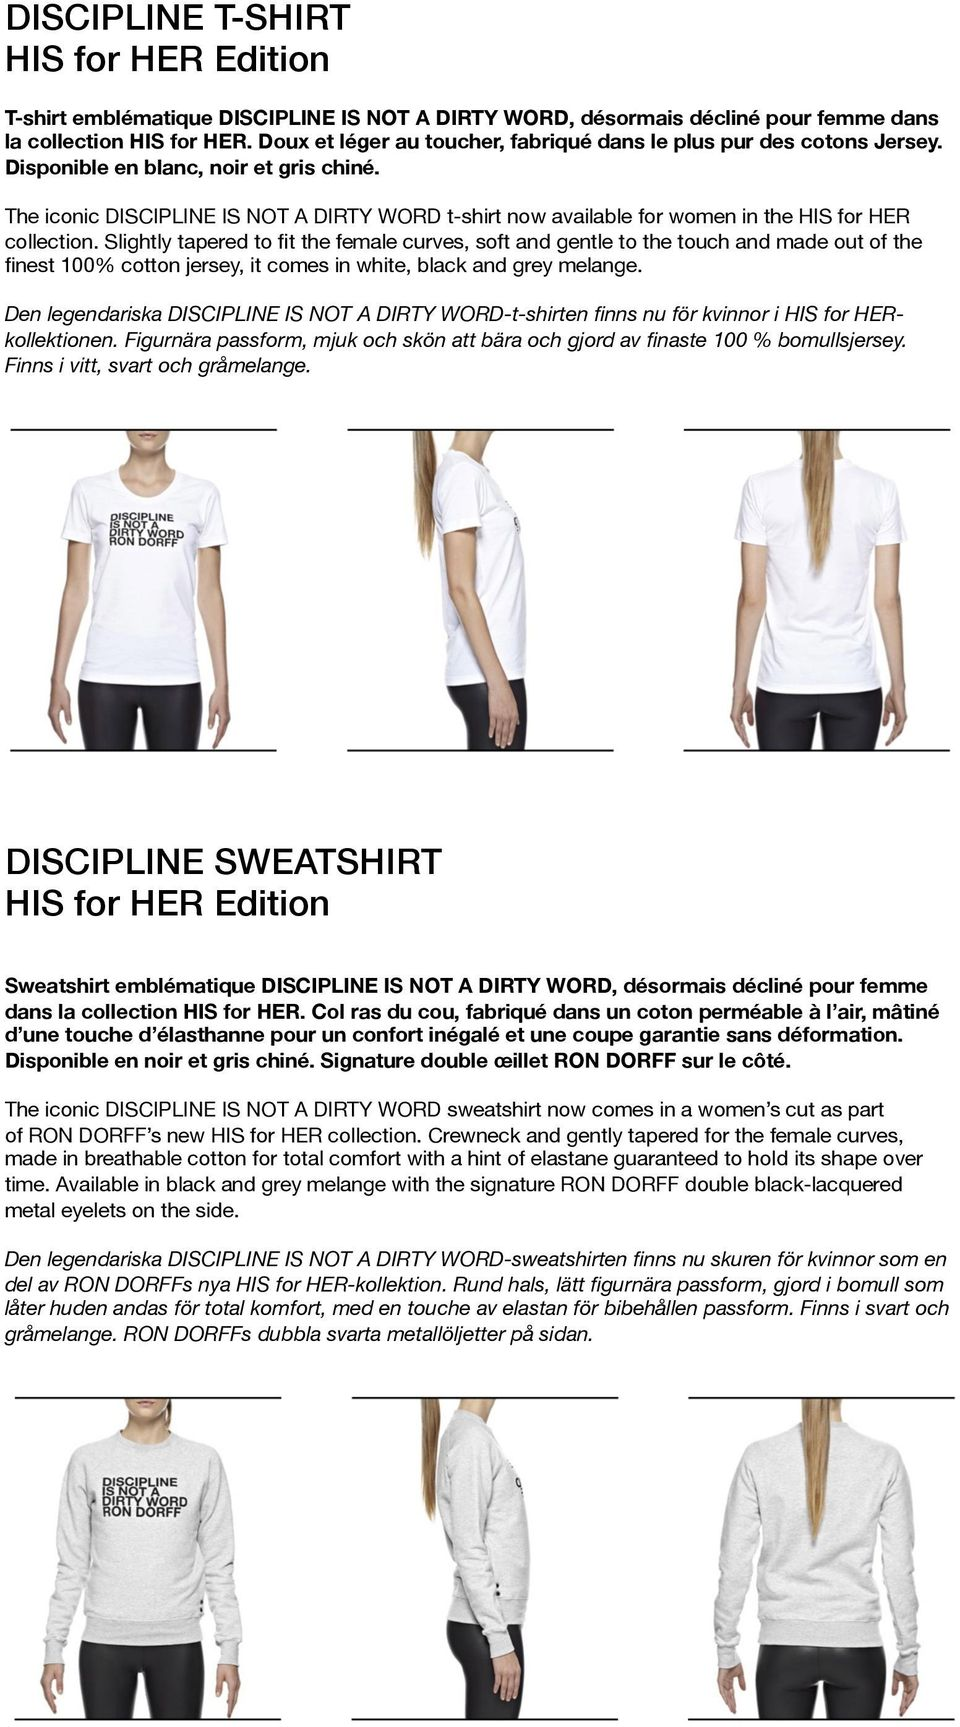 The iconic DISCIPLINE IS NOT A DIRTY WORD t-shirt now available for women in the HIS for HER collection.